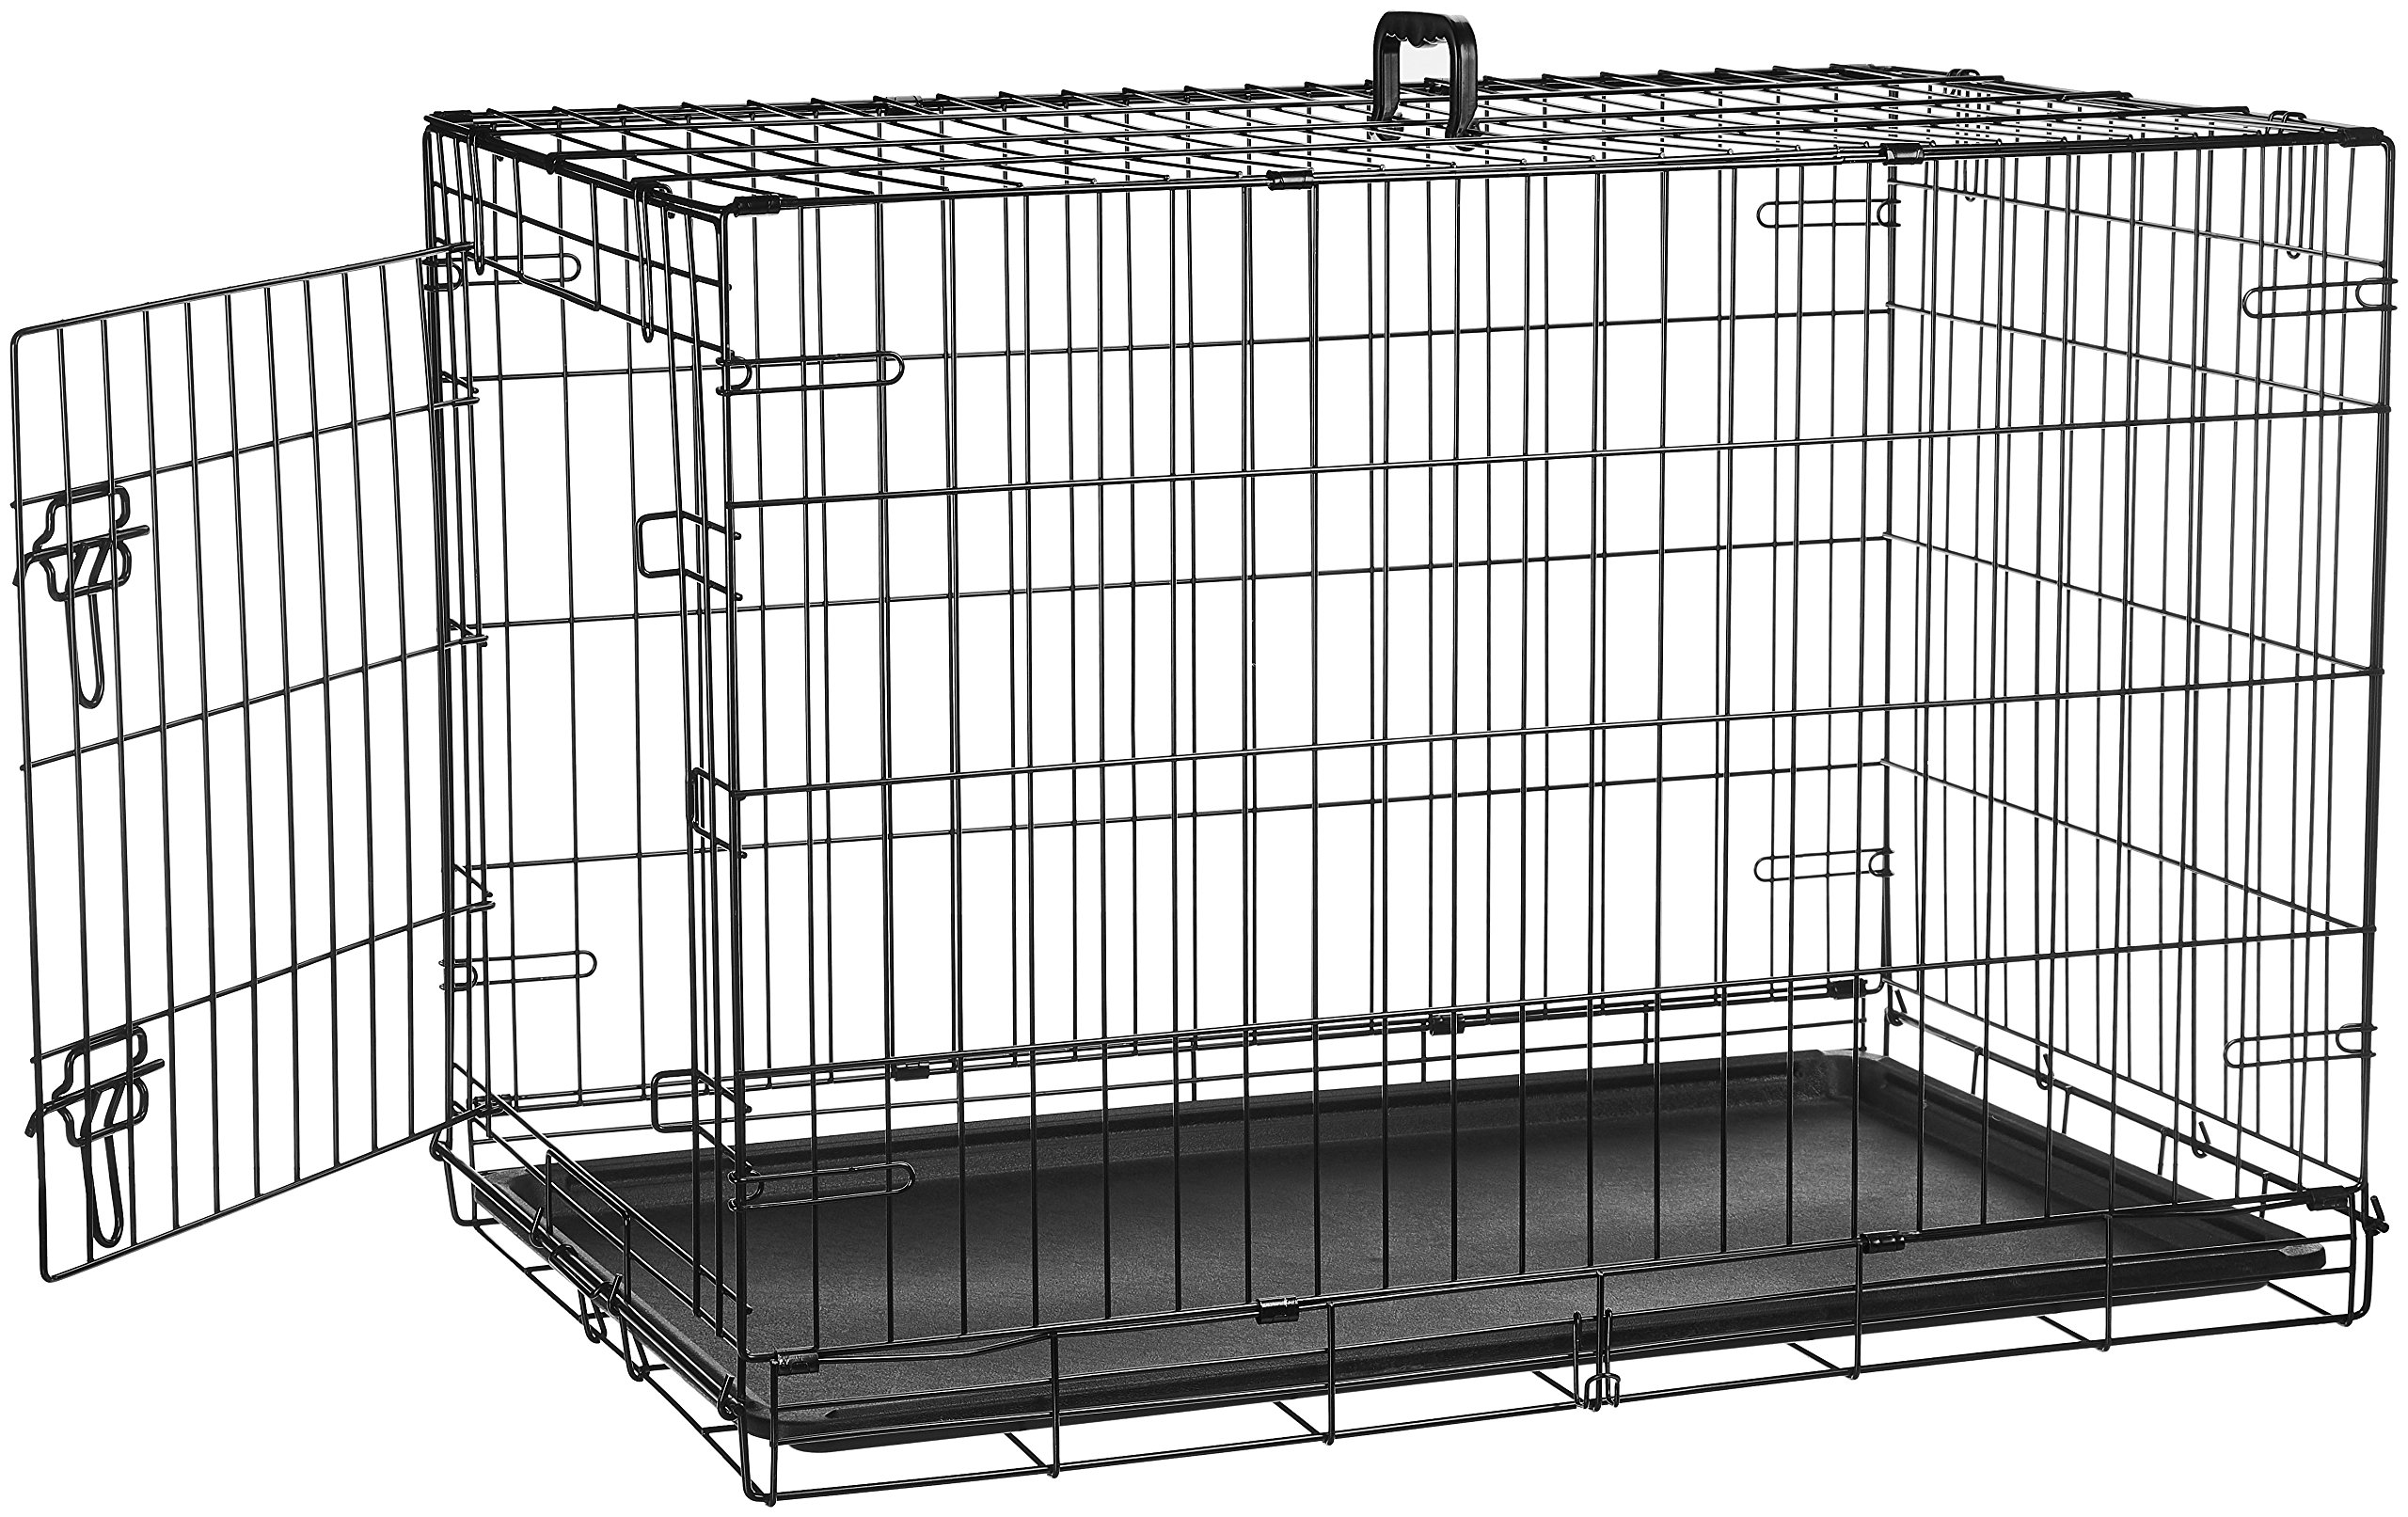 AmazonBasics Single Door Folding Metal Cage Crate For Dog or Puppy - 36 x 23 x 25 Inches by AmazonBasics